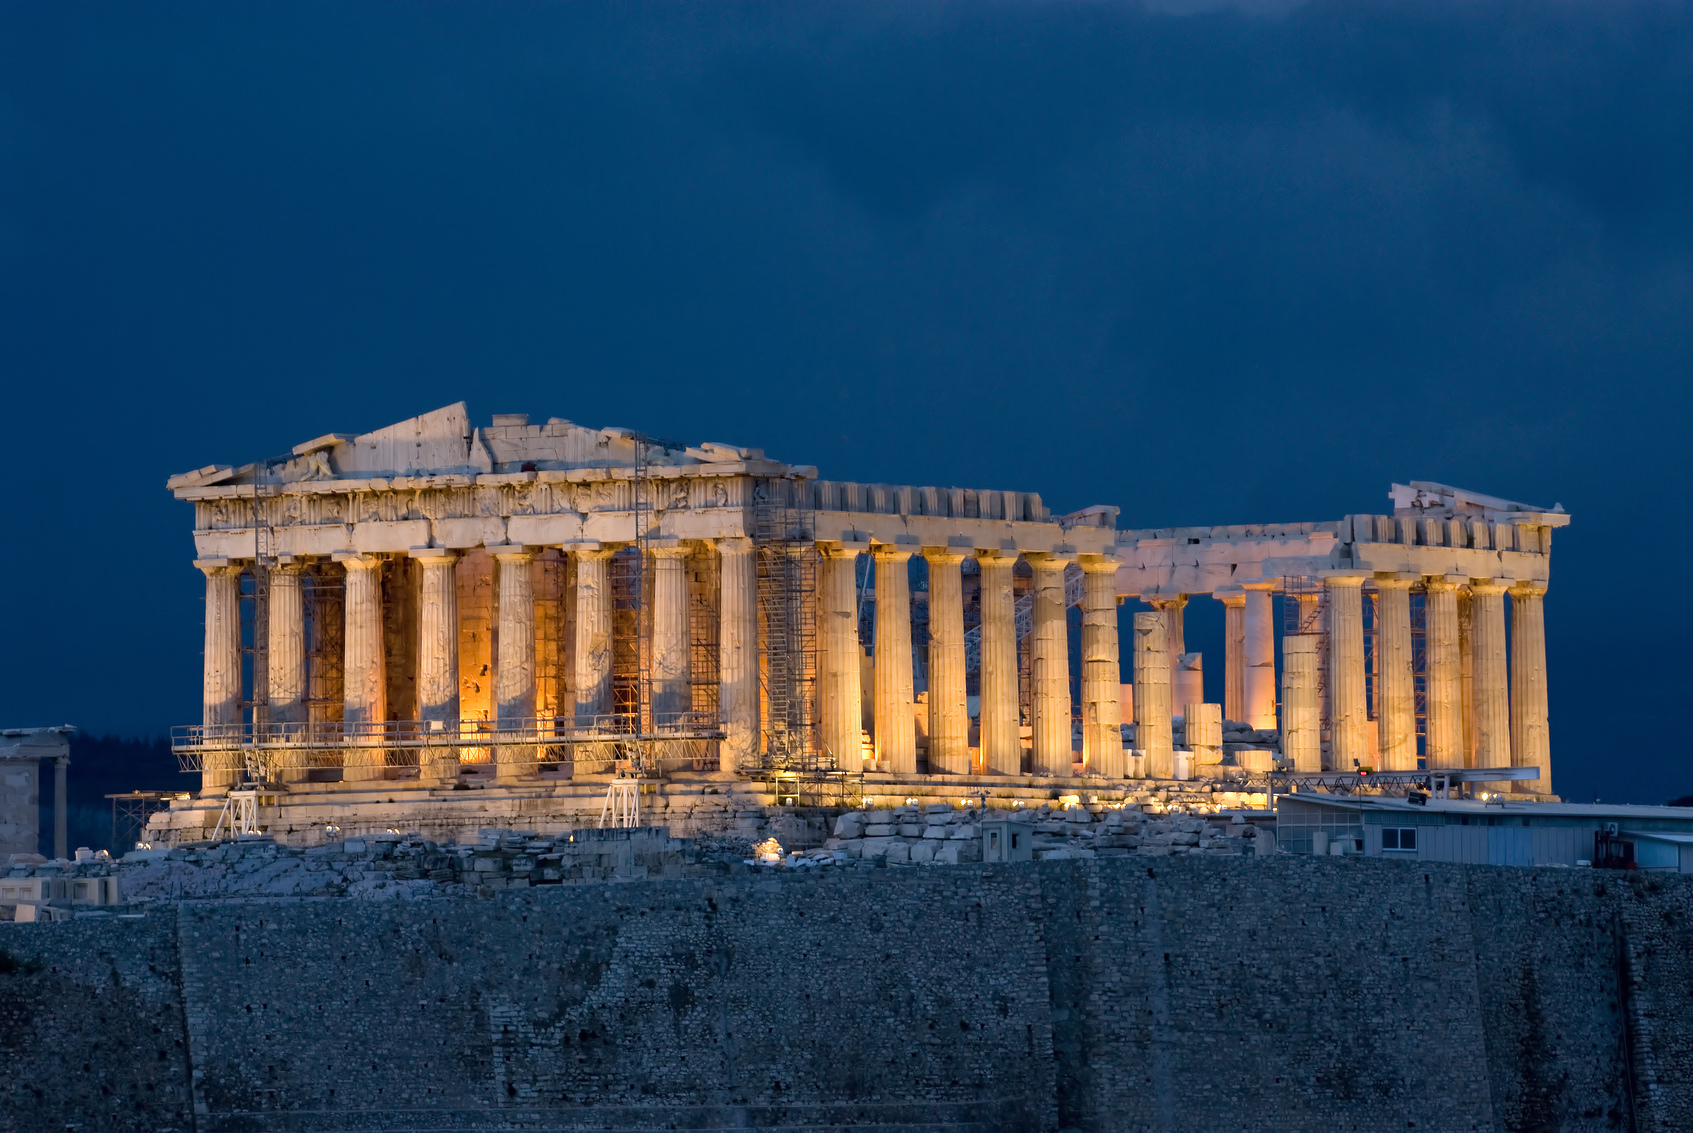 Parthenon at night on Acropolis at Athens Greece